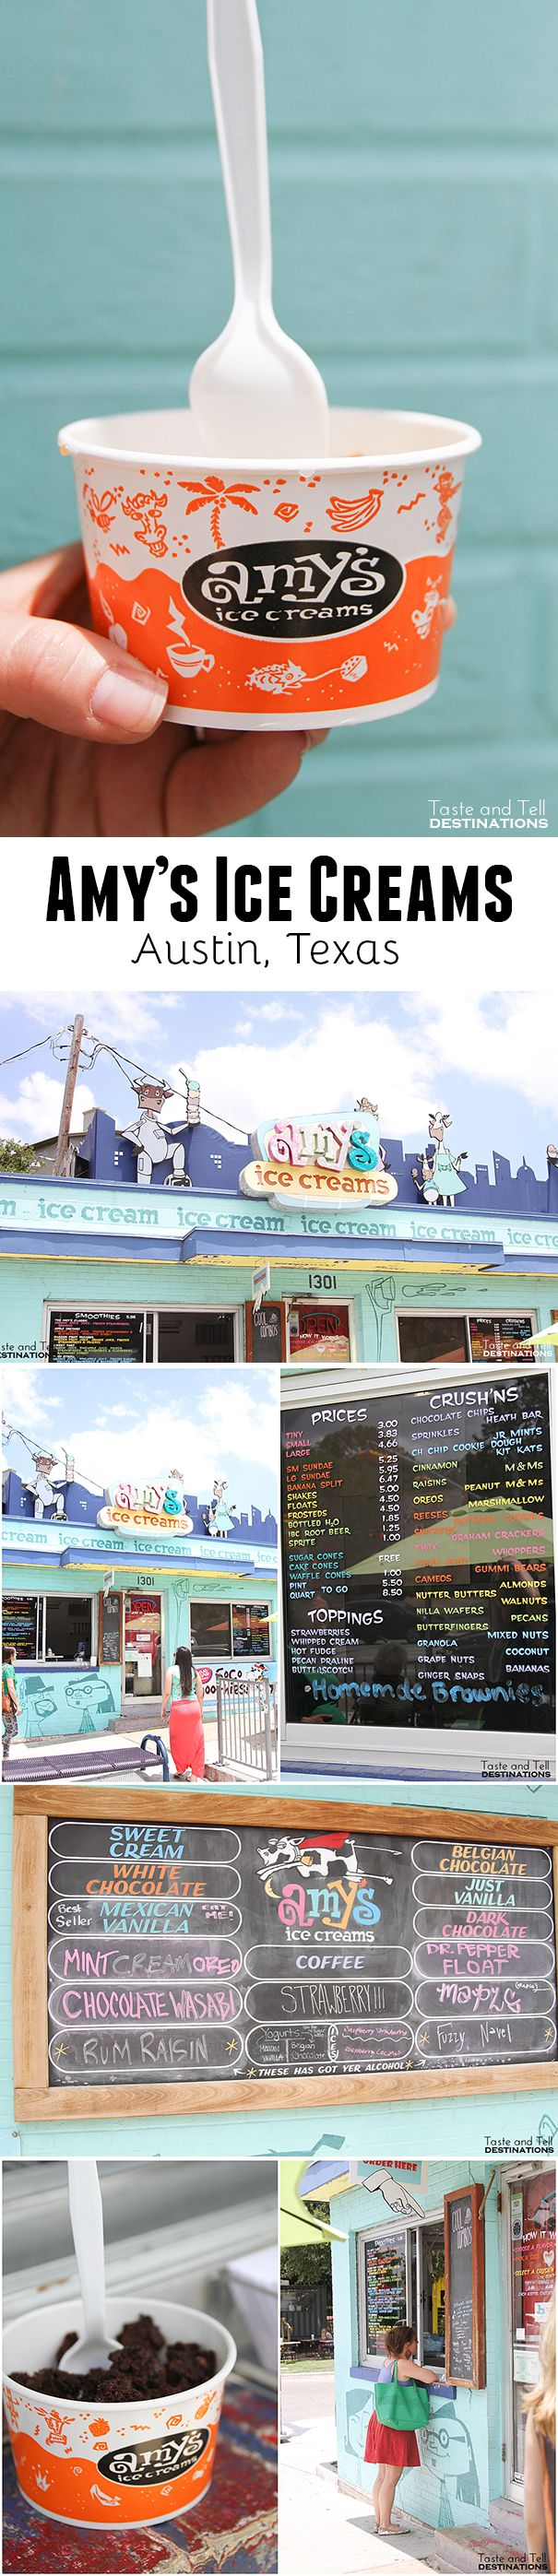 Amy's Ice Creams in Austin, TX  #Austin